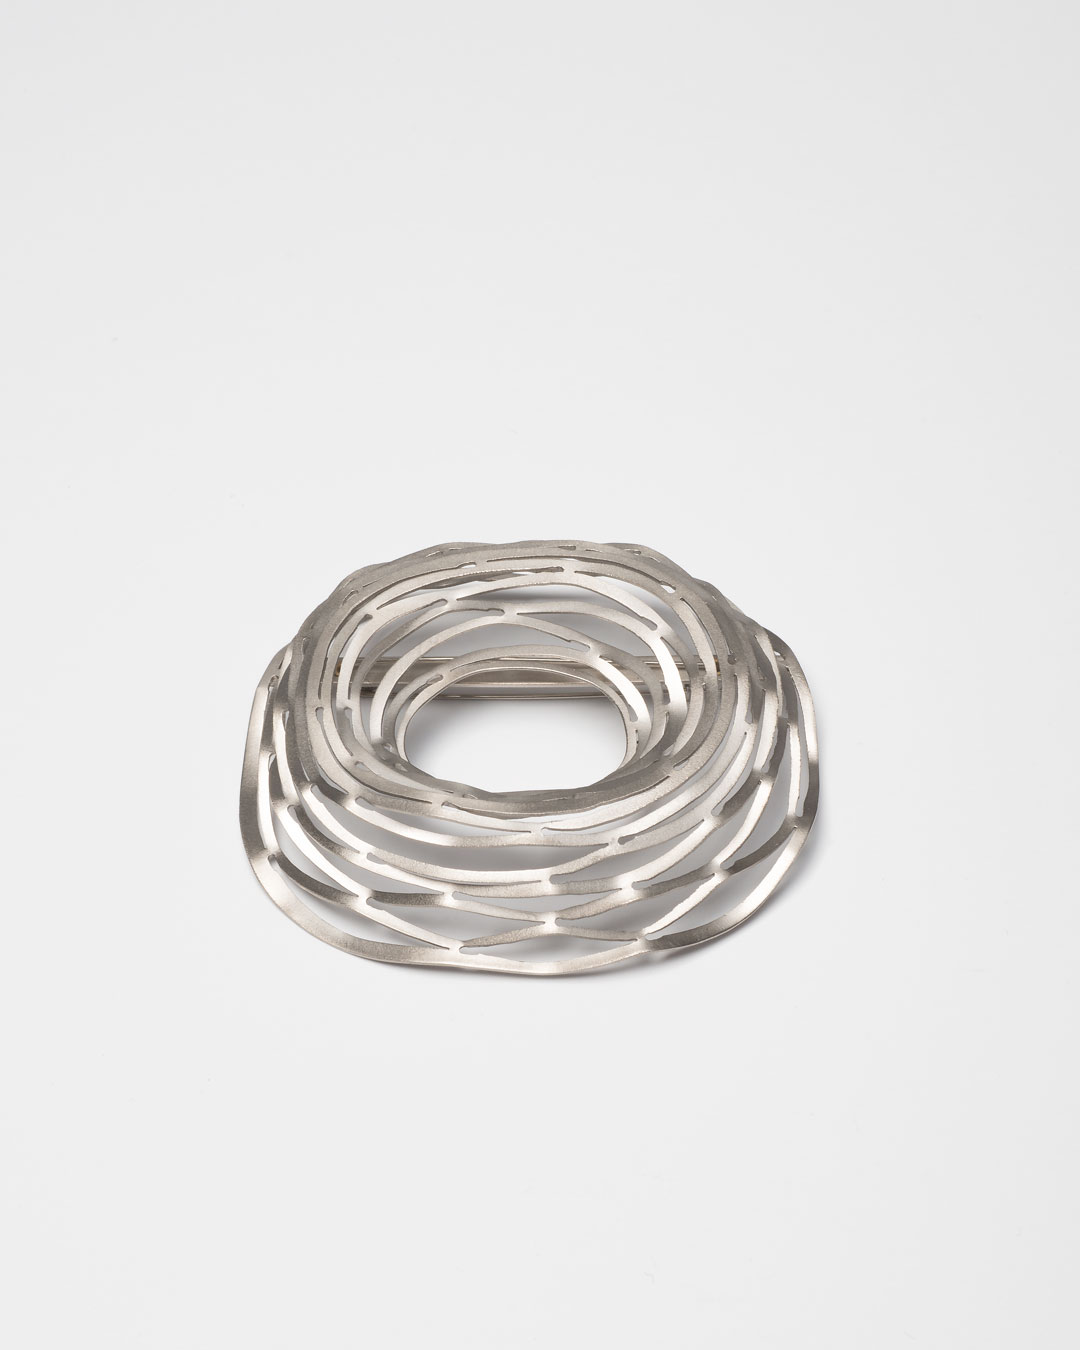 Antje Bräuer, untitled, 2010, brooch; titanium, gold, stainless steel, 65 x 77 x 21 mm, €535